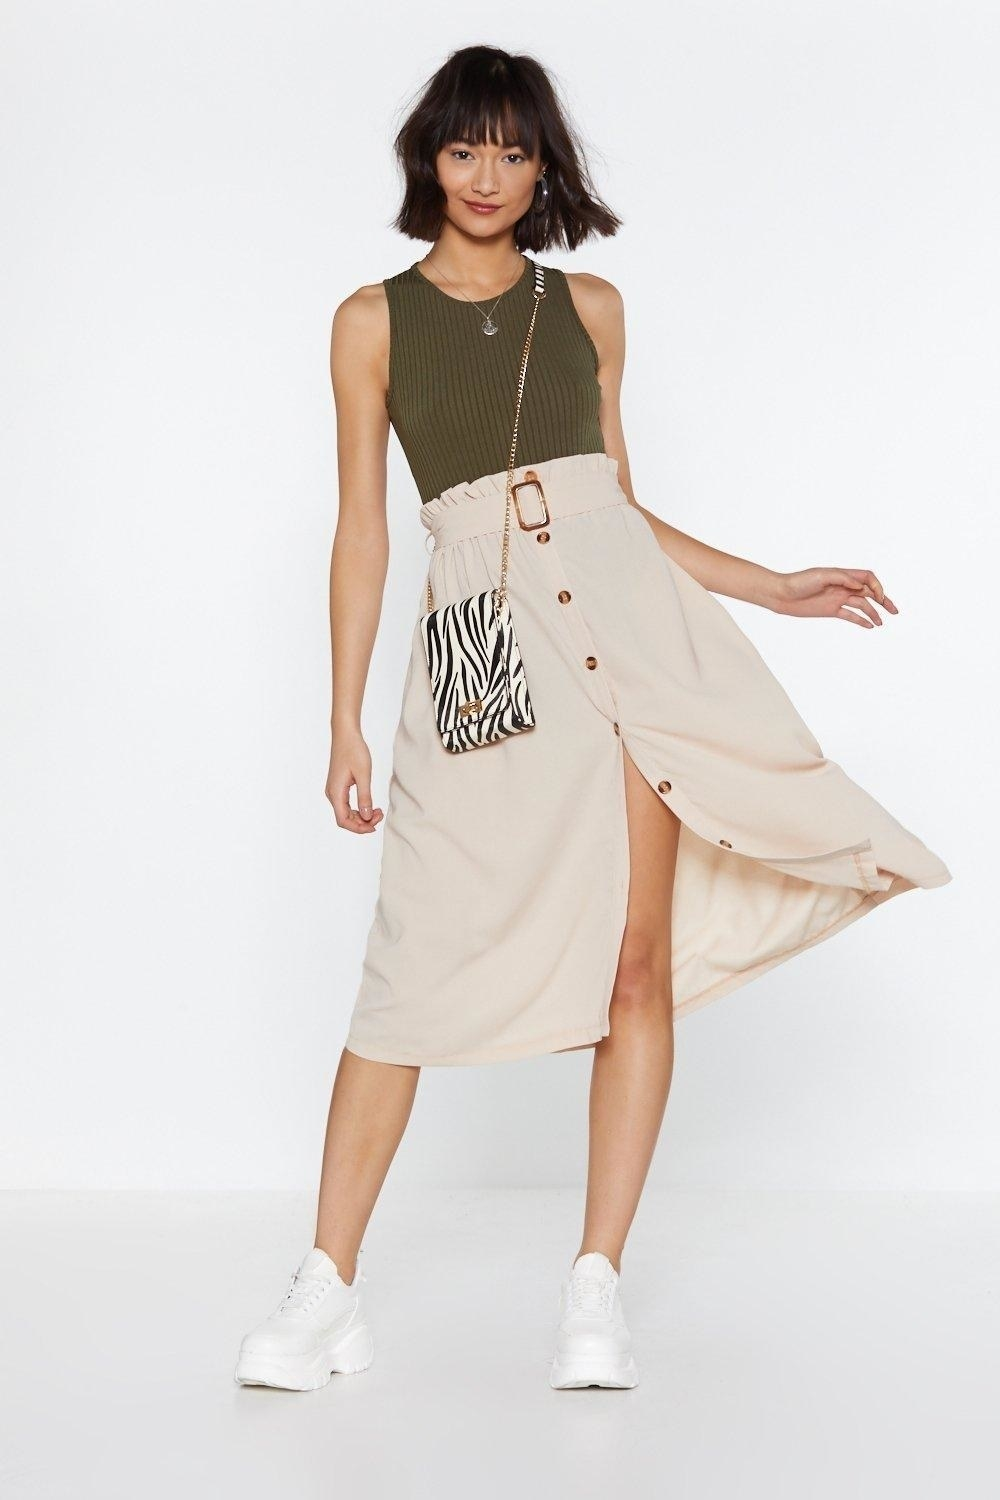 Get it on sale from Nasty Gal for $30 (originally $60; available in sizes 2-10).